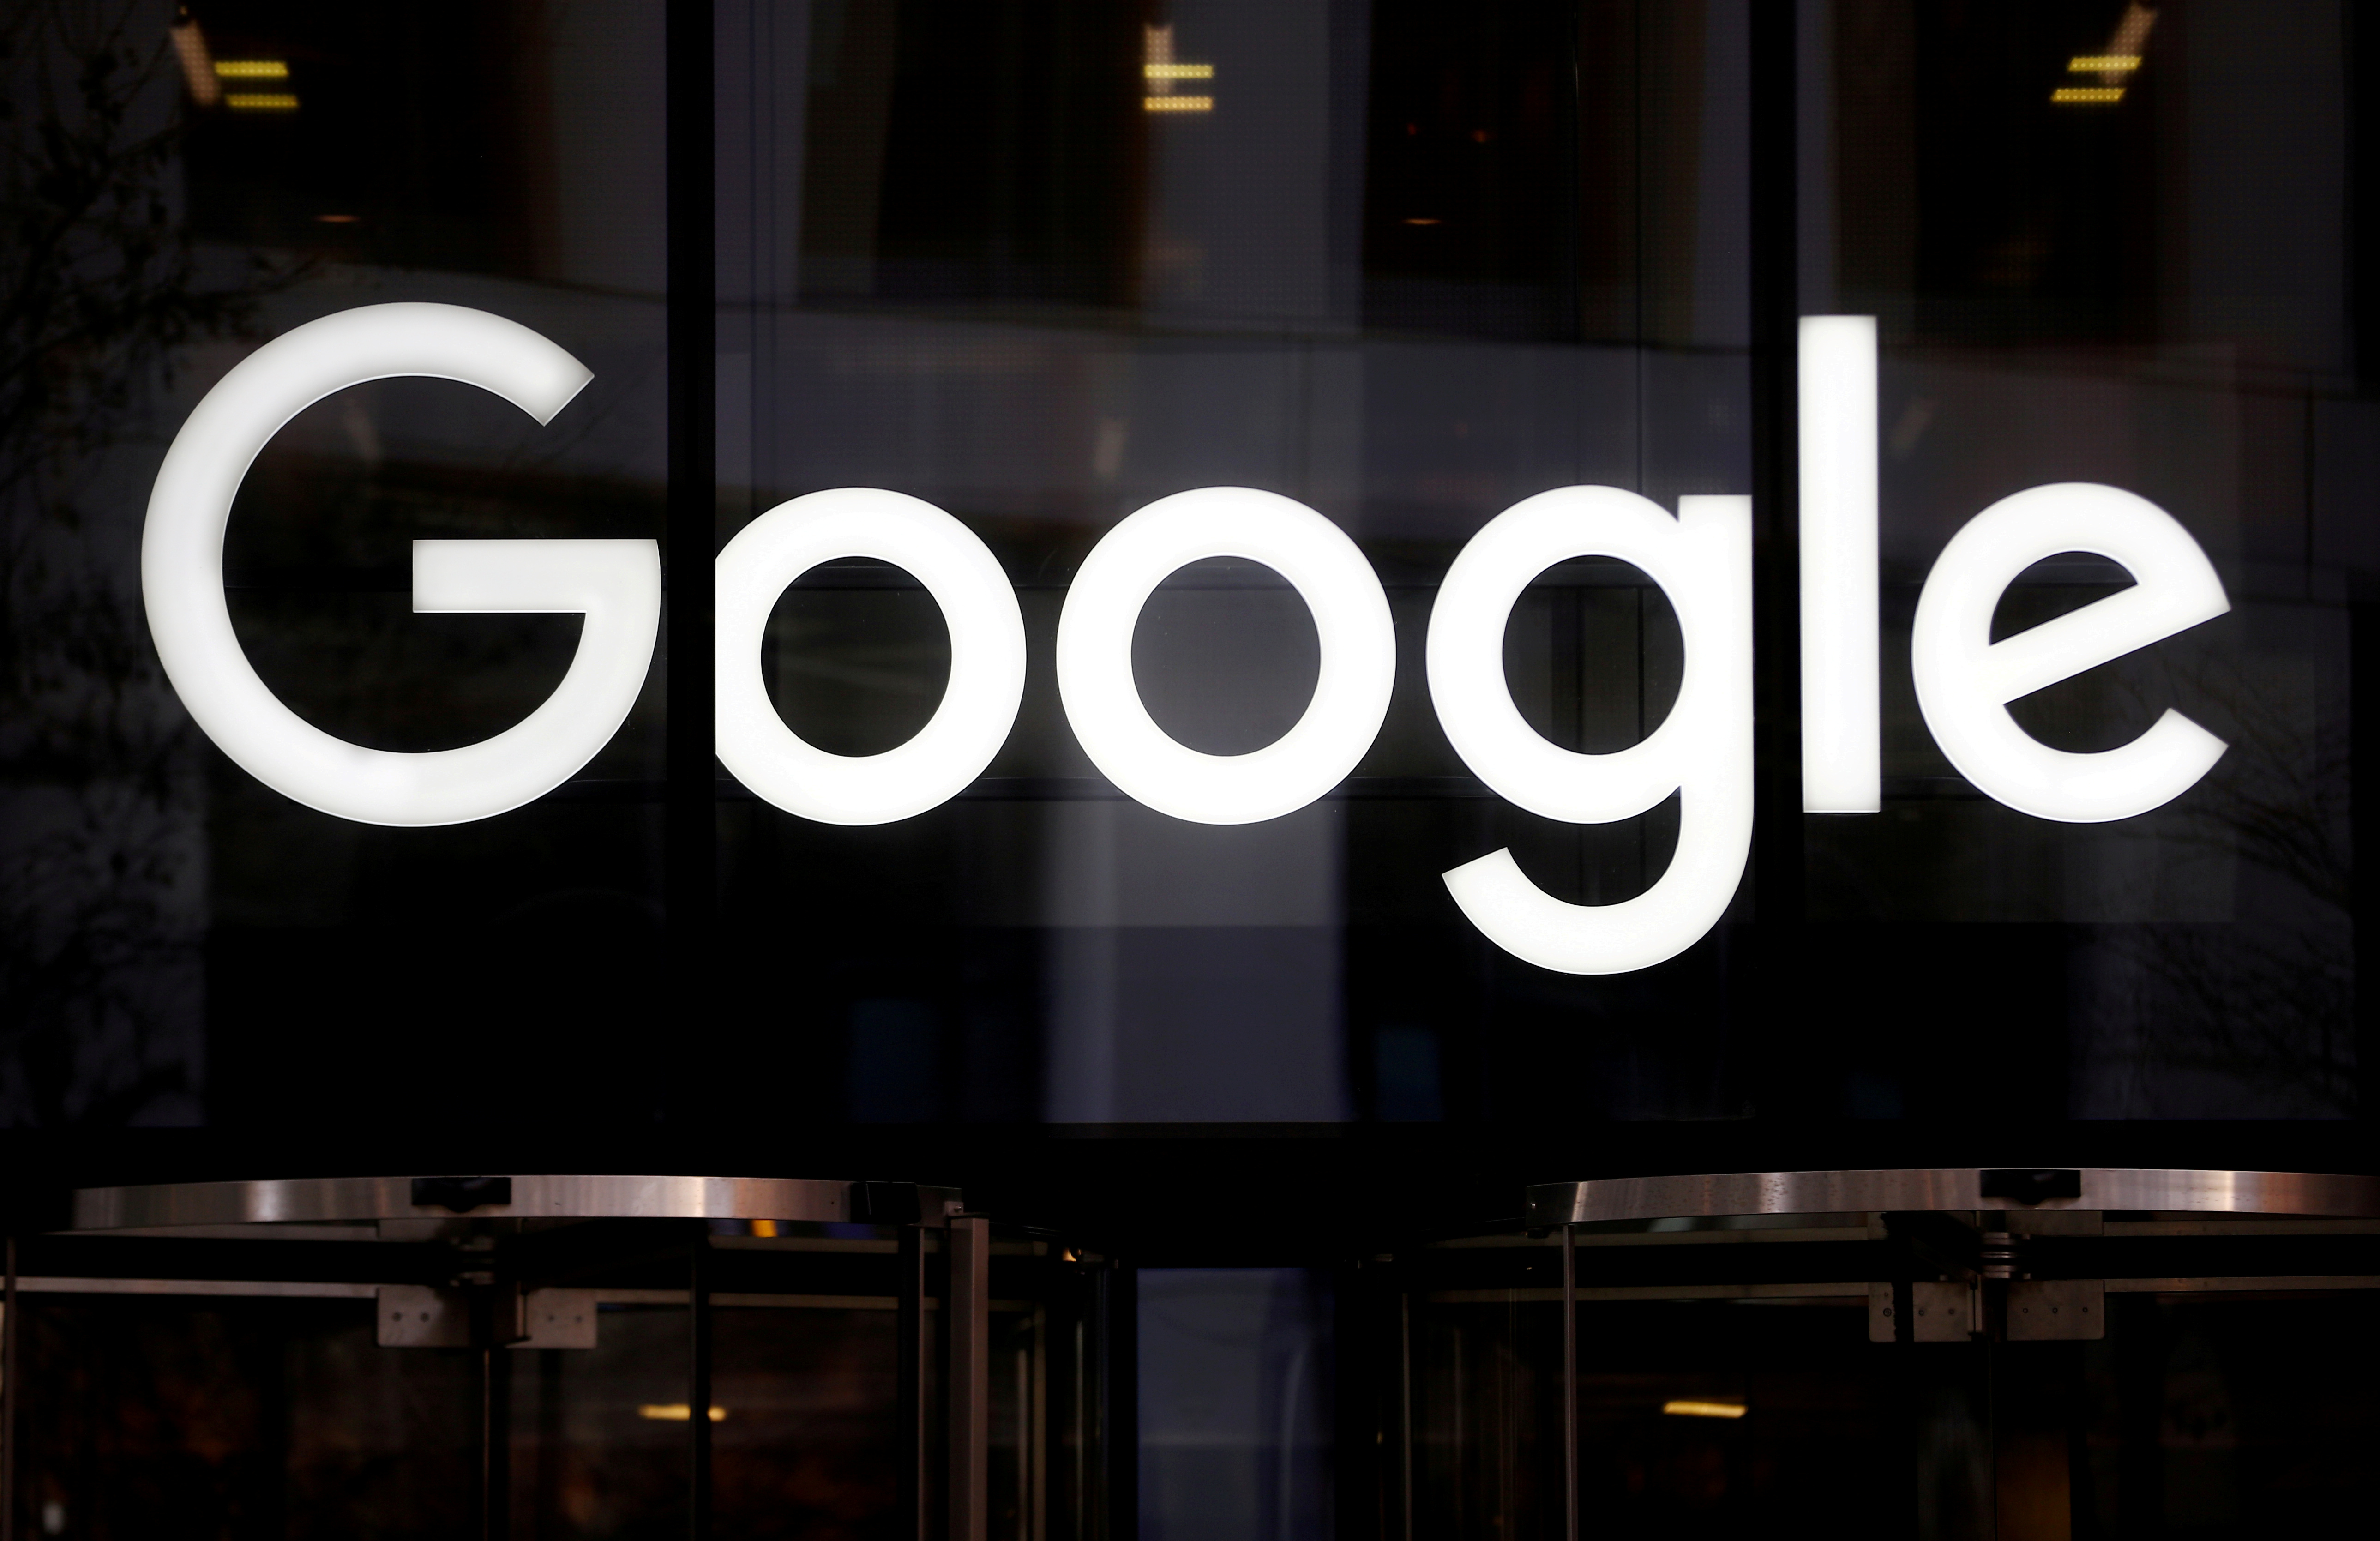 Google appears to have leveraged Android dominance: India